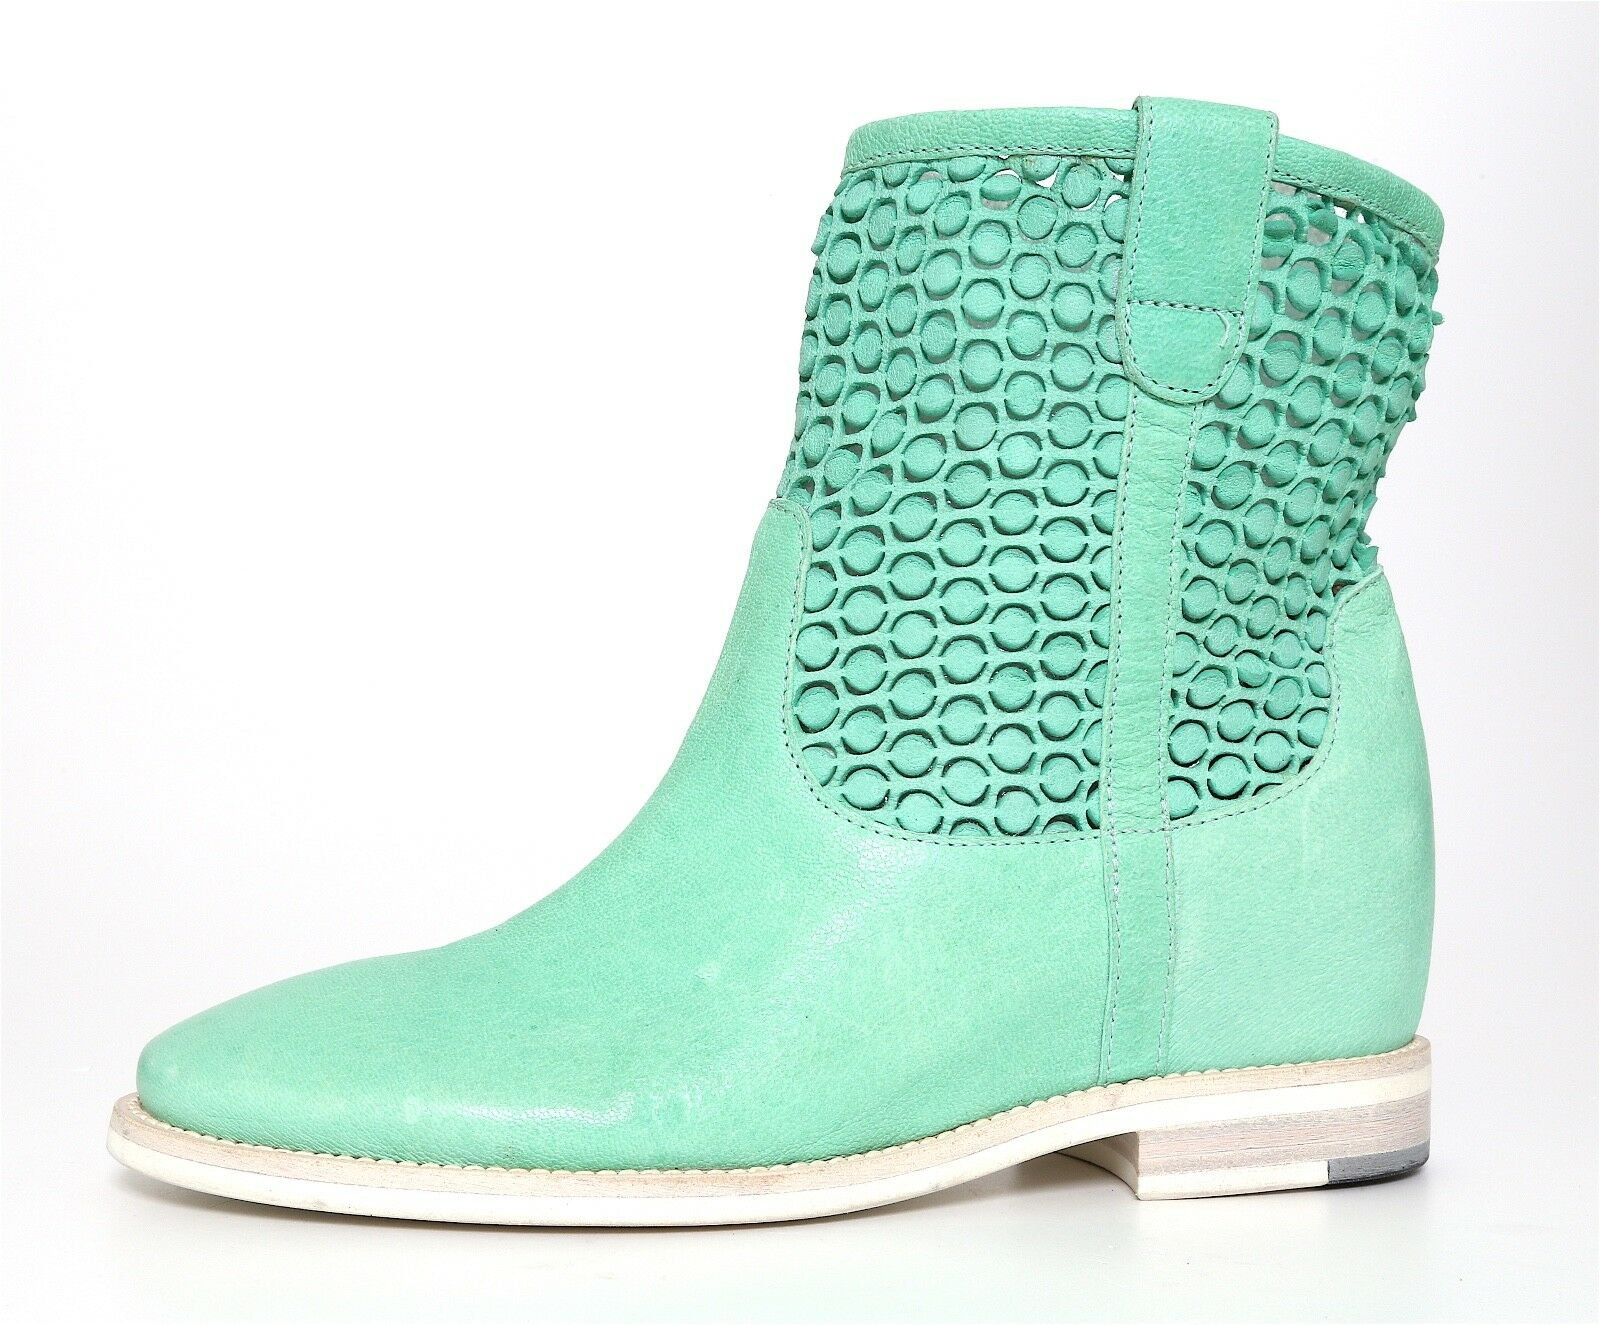 Aquatalia By Marvin K. Slouchy Mid Calf Leather Boot Green Women Sz 6.5 5173 *